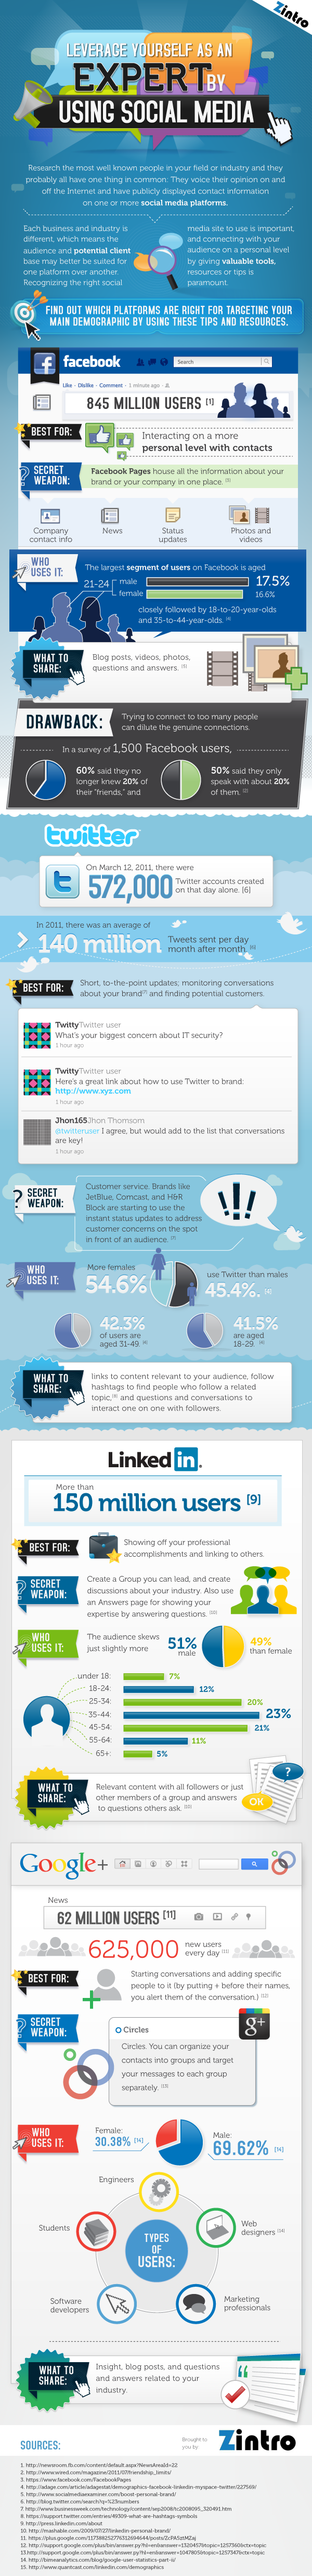 Leveraging Social Media to Showcase Your Expertise [INFOGRAPHIC]